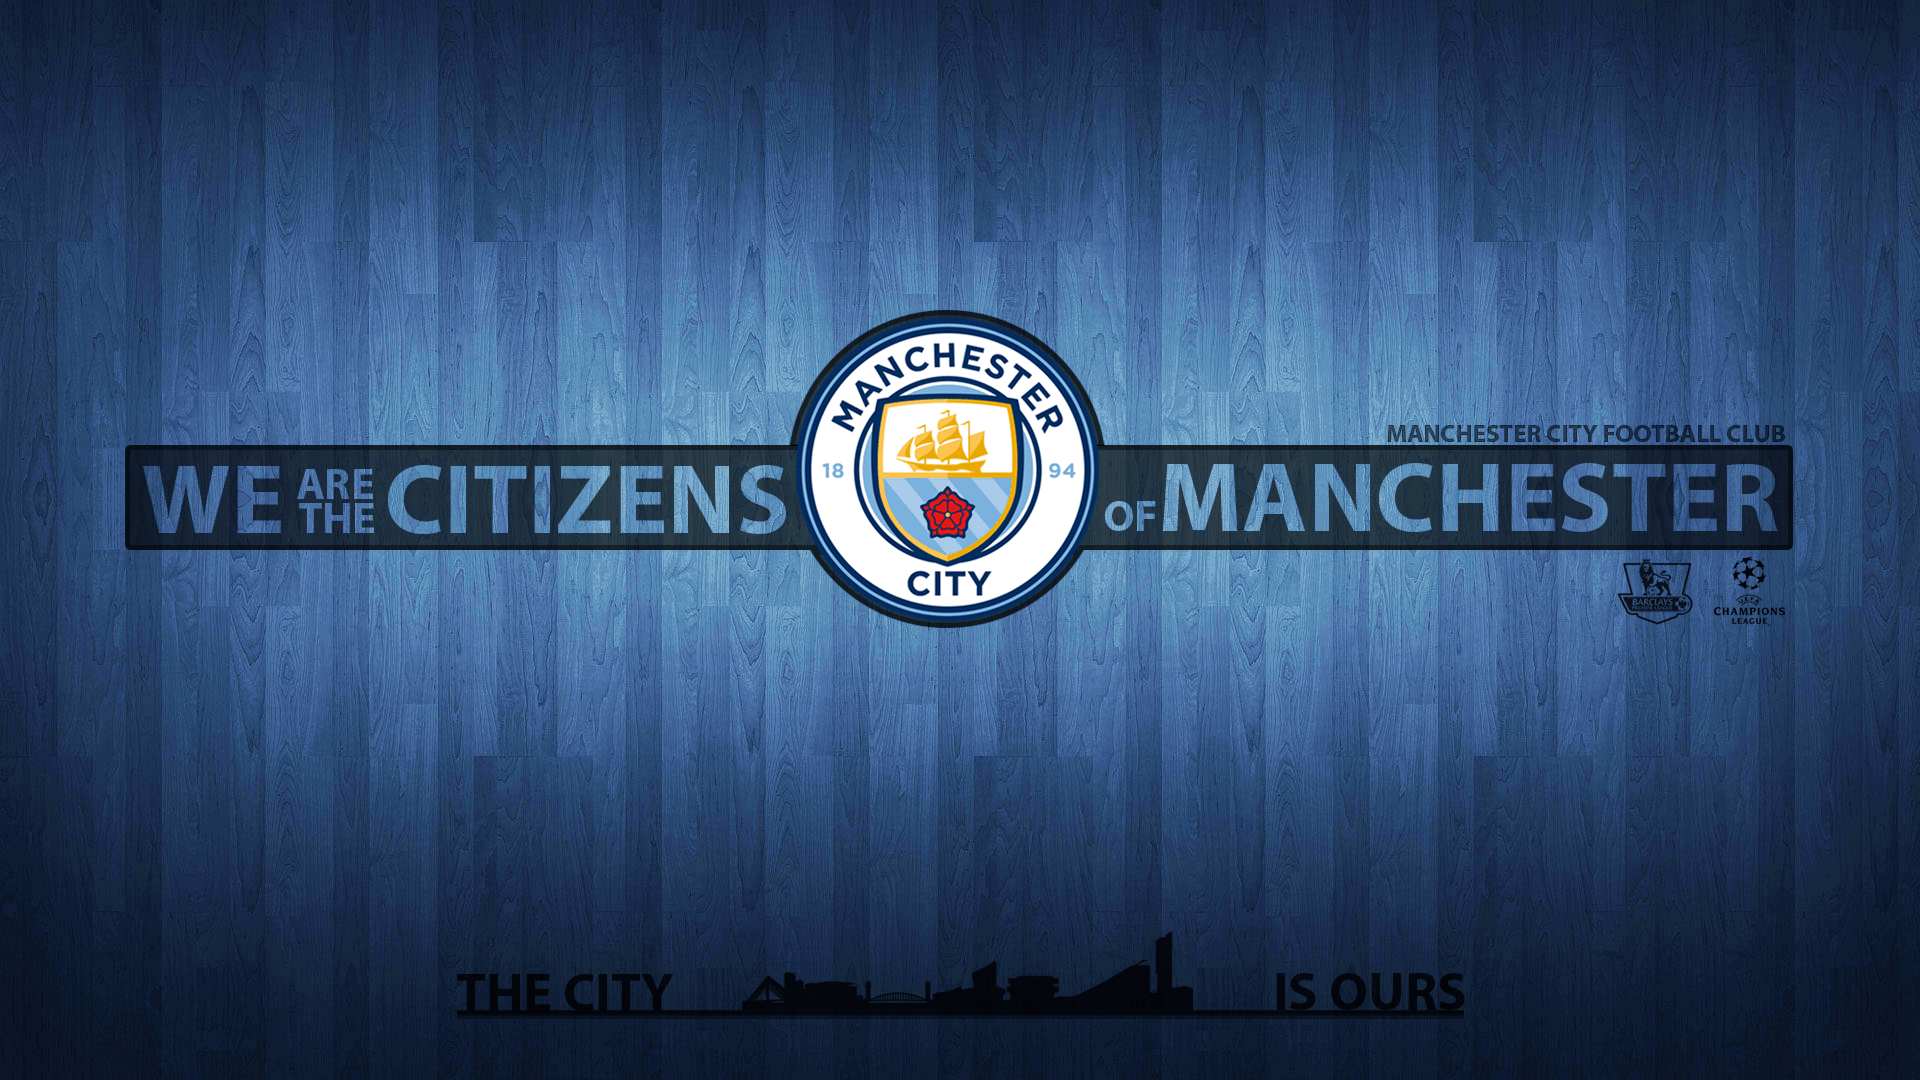 Manchester City Logos Wallpapers Wallpaper Cave